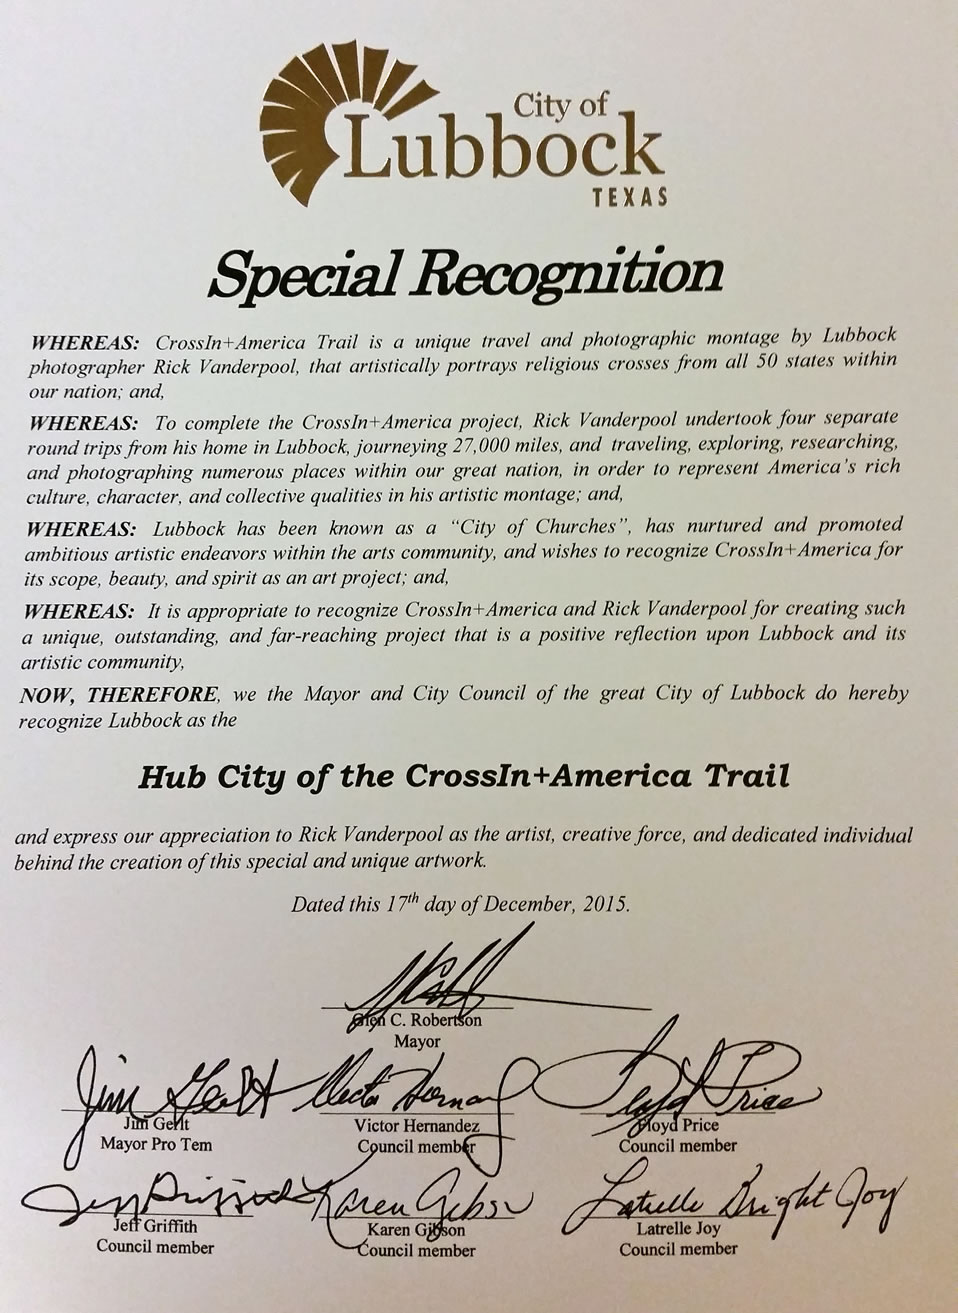 Special Recognition from City of Lubbock